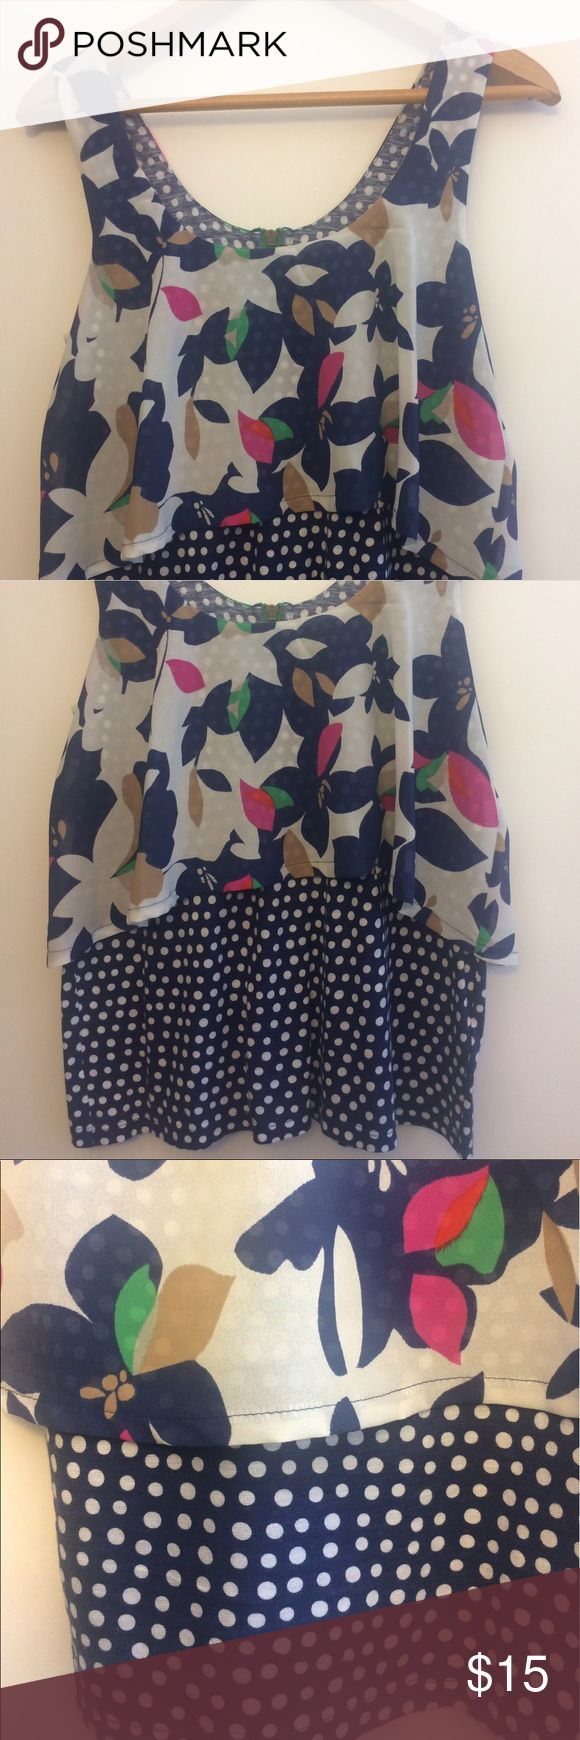 Anthropologie Meadow Rue top Like -new condition Anthropologie Tops Blouses